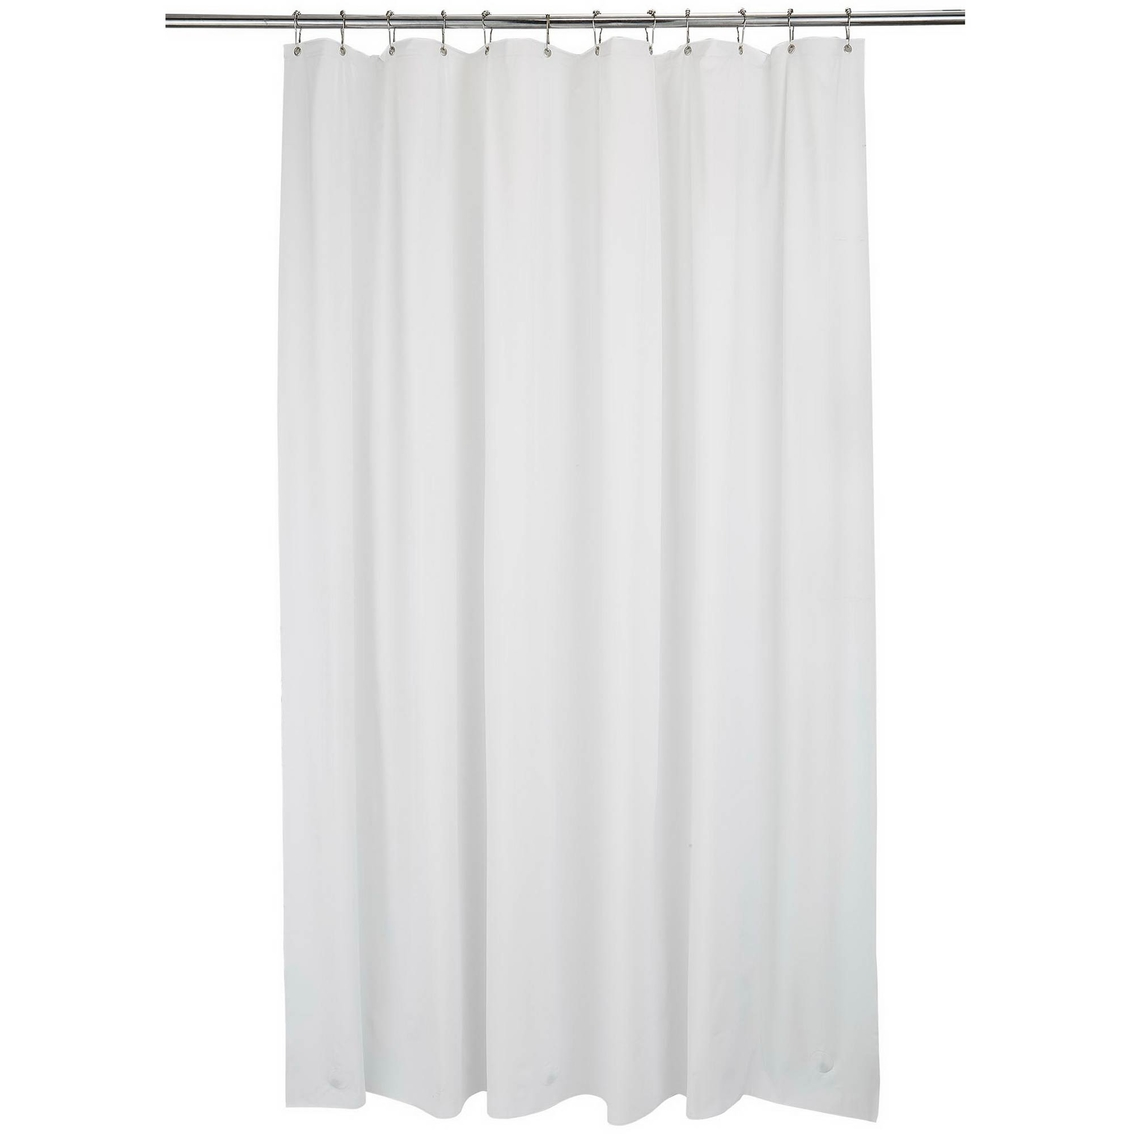 Bath Bliss Extra Long 72 X 84 In Shower Liner